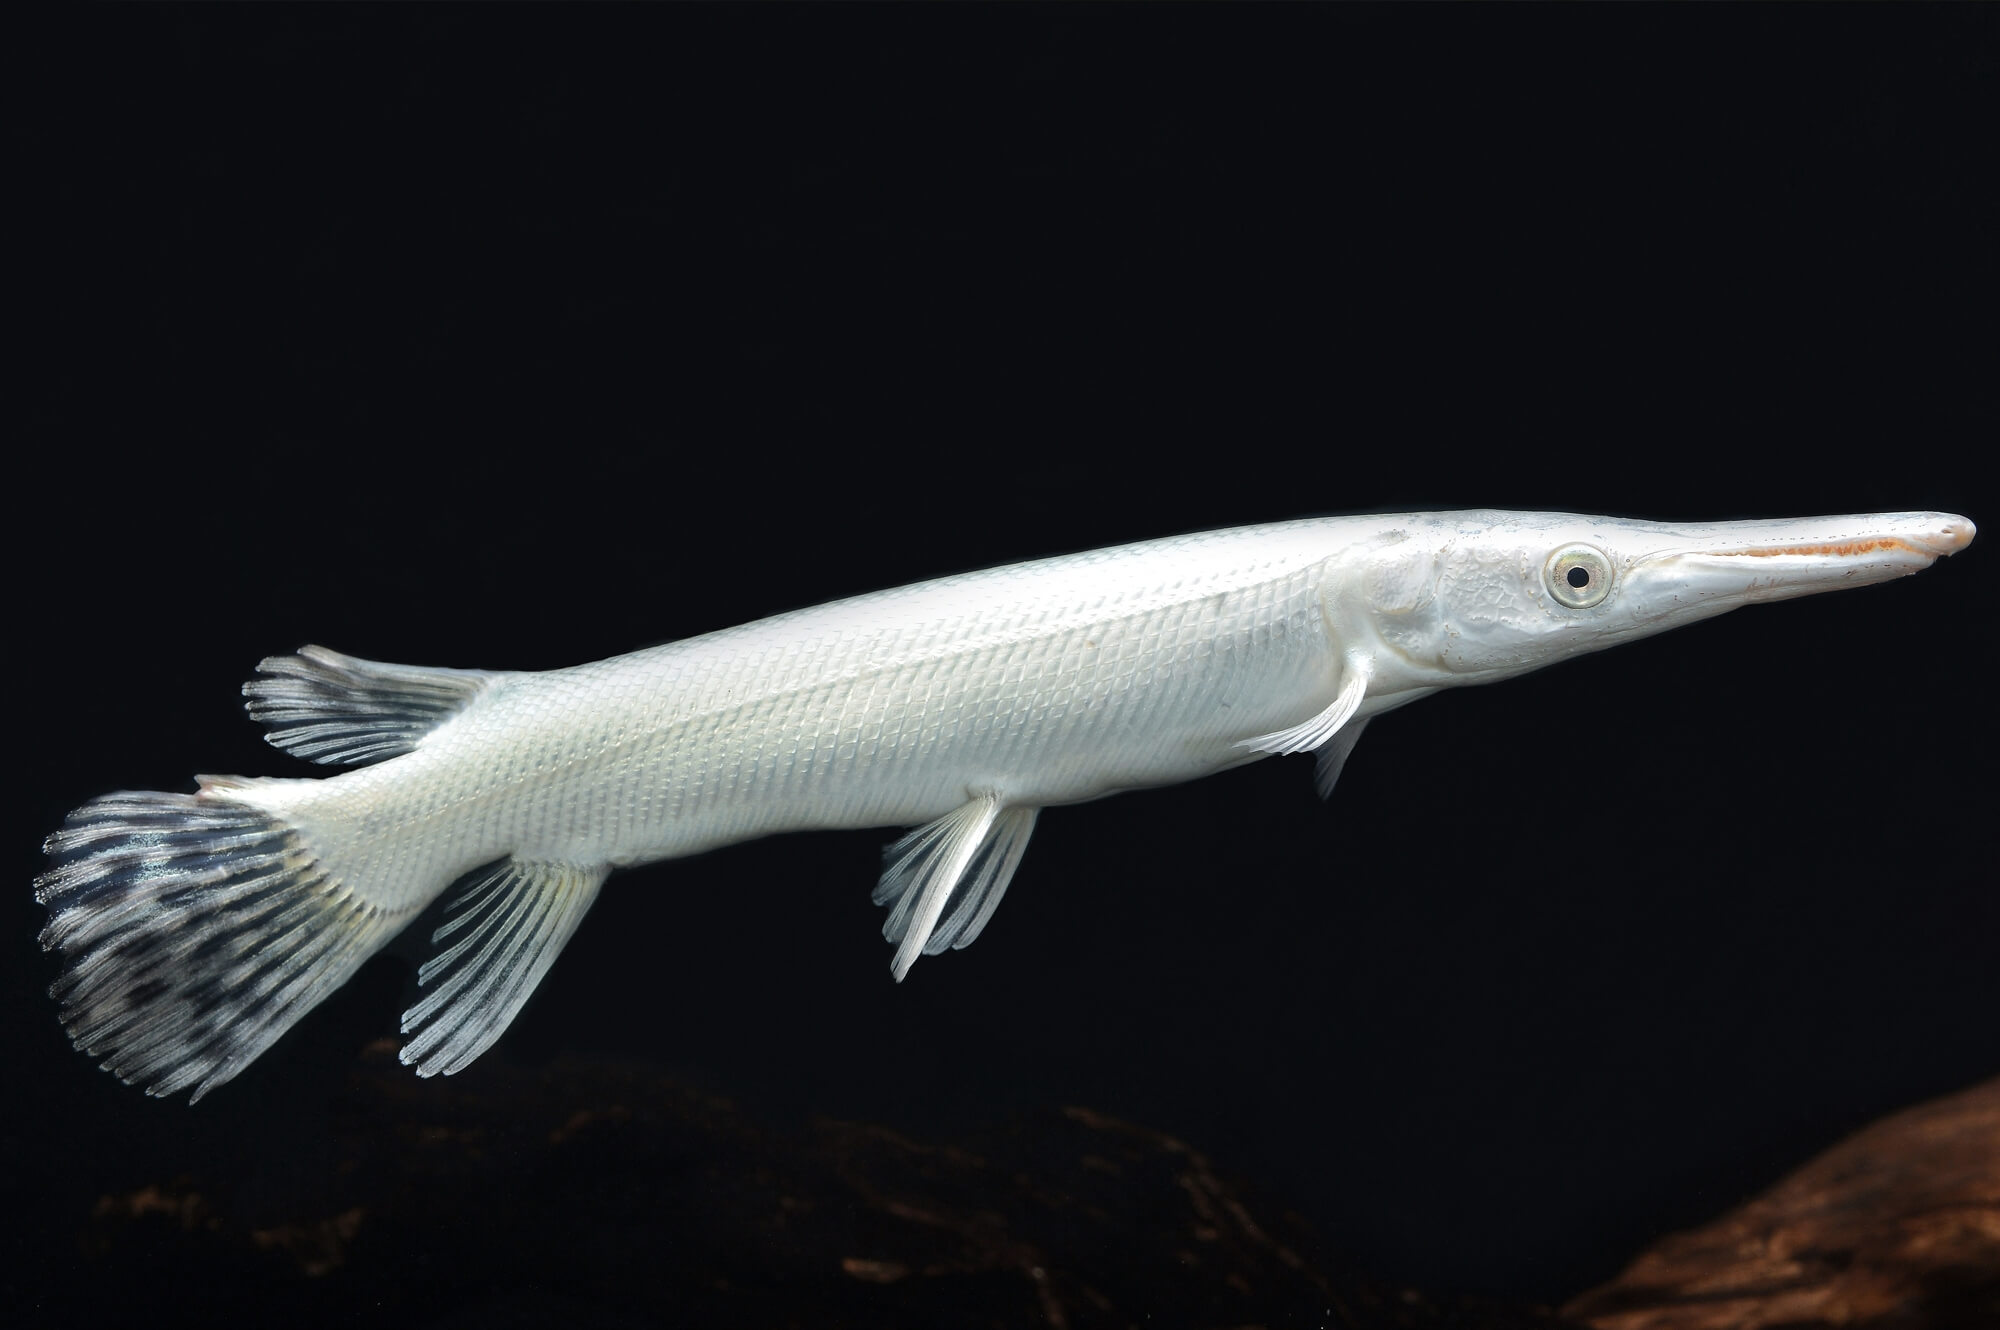 Platinum Alligator Gar